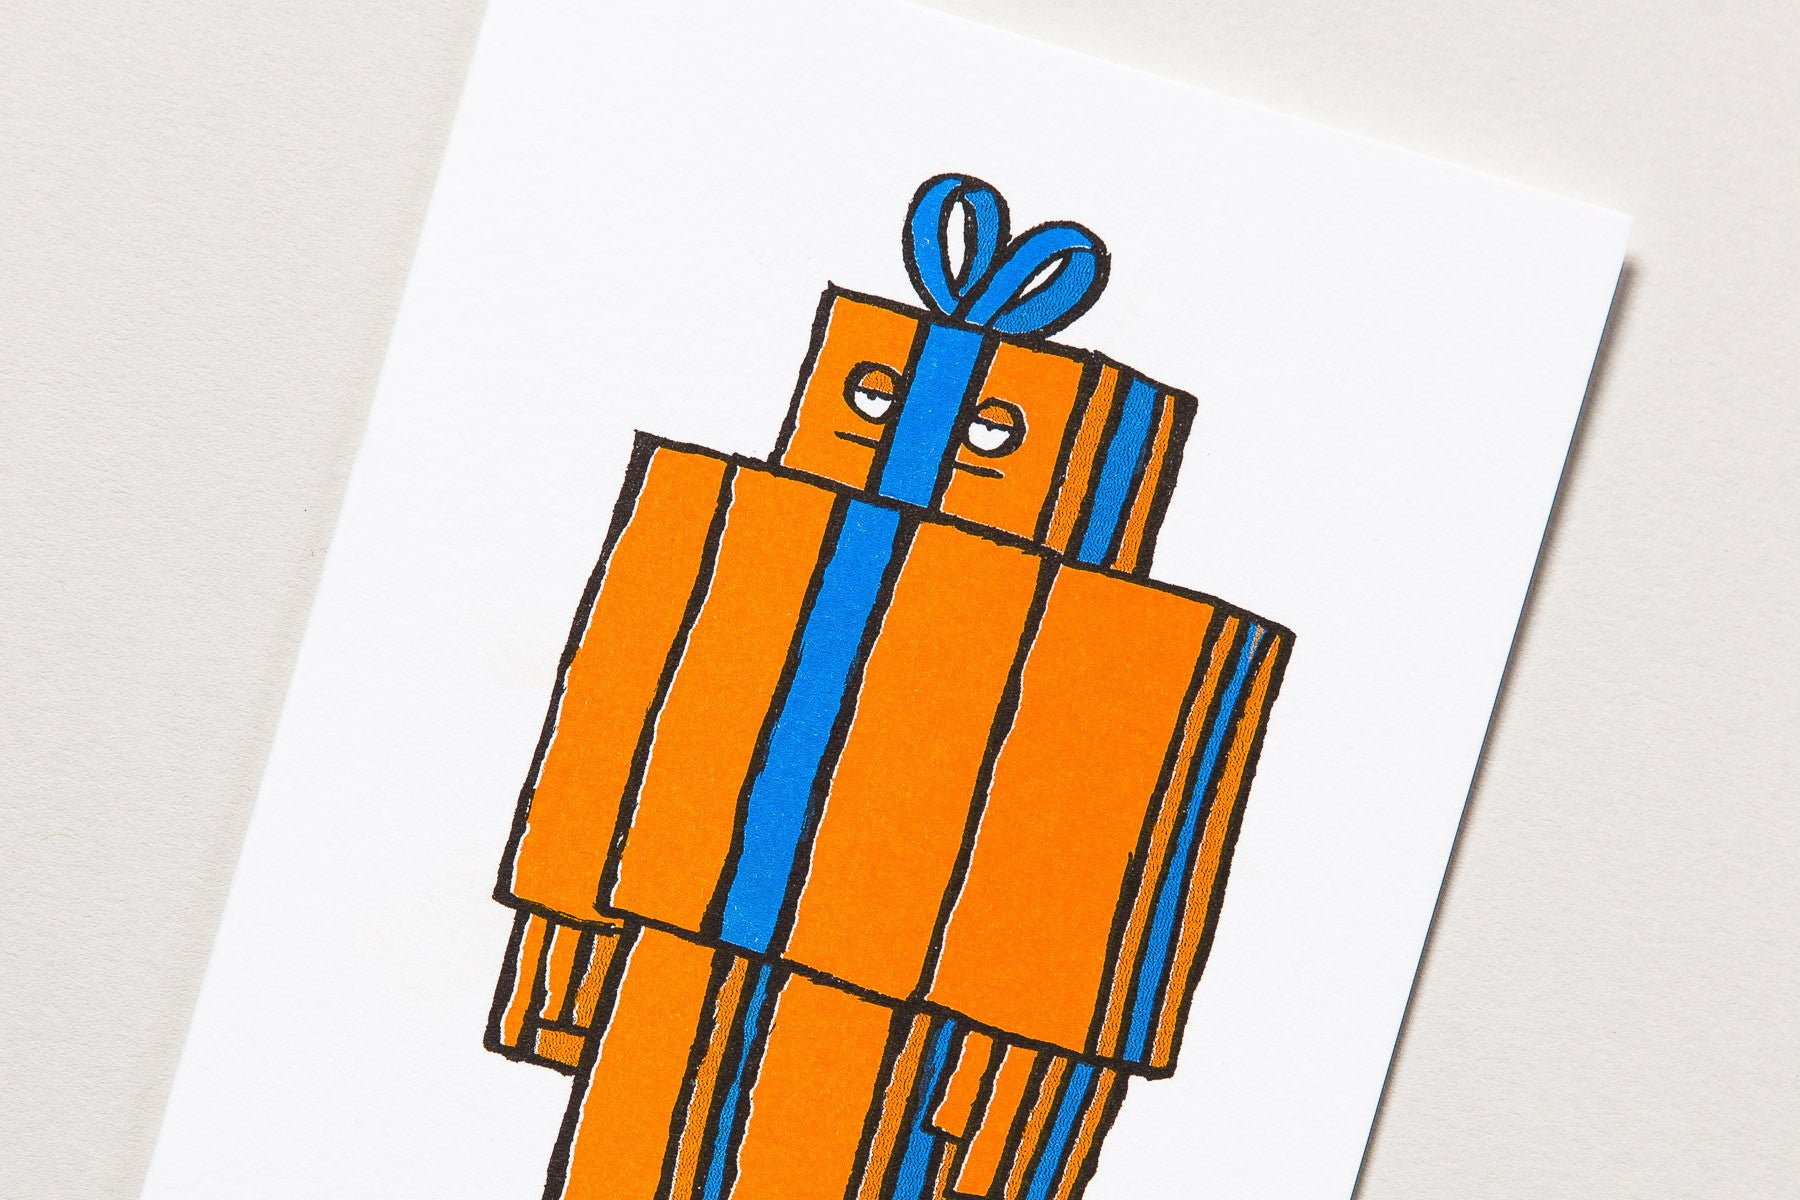 Birthday Card by Jean Jullien